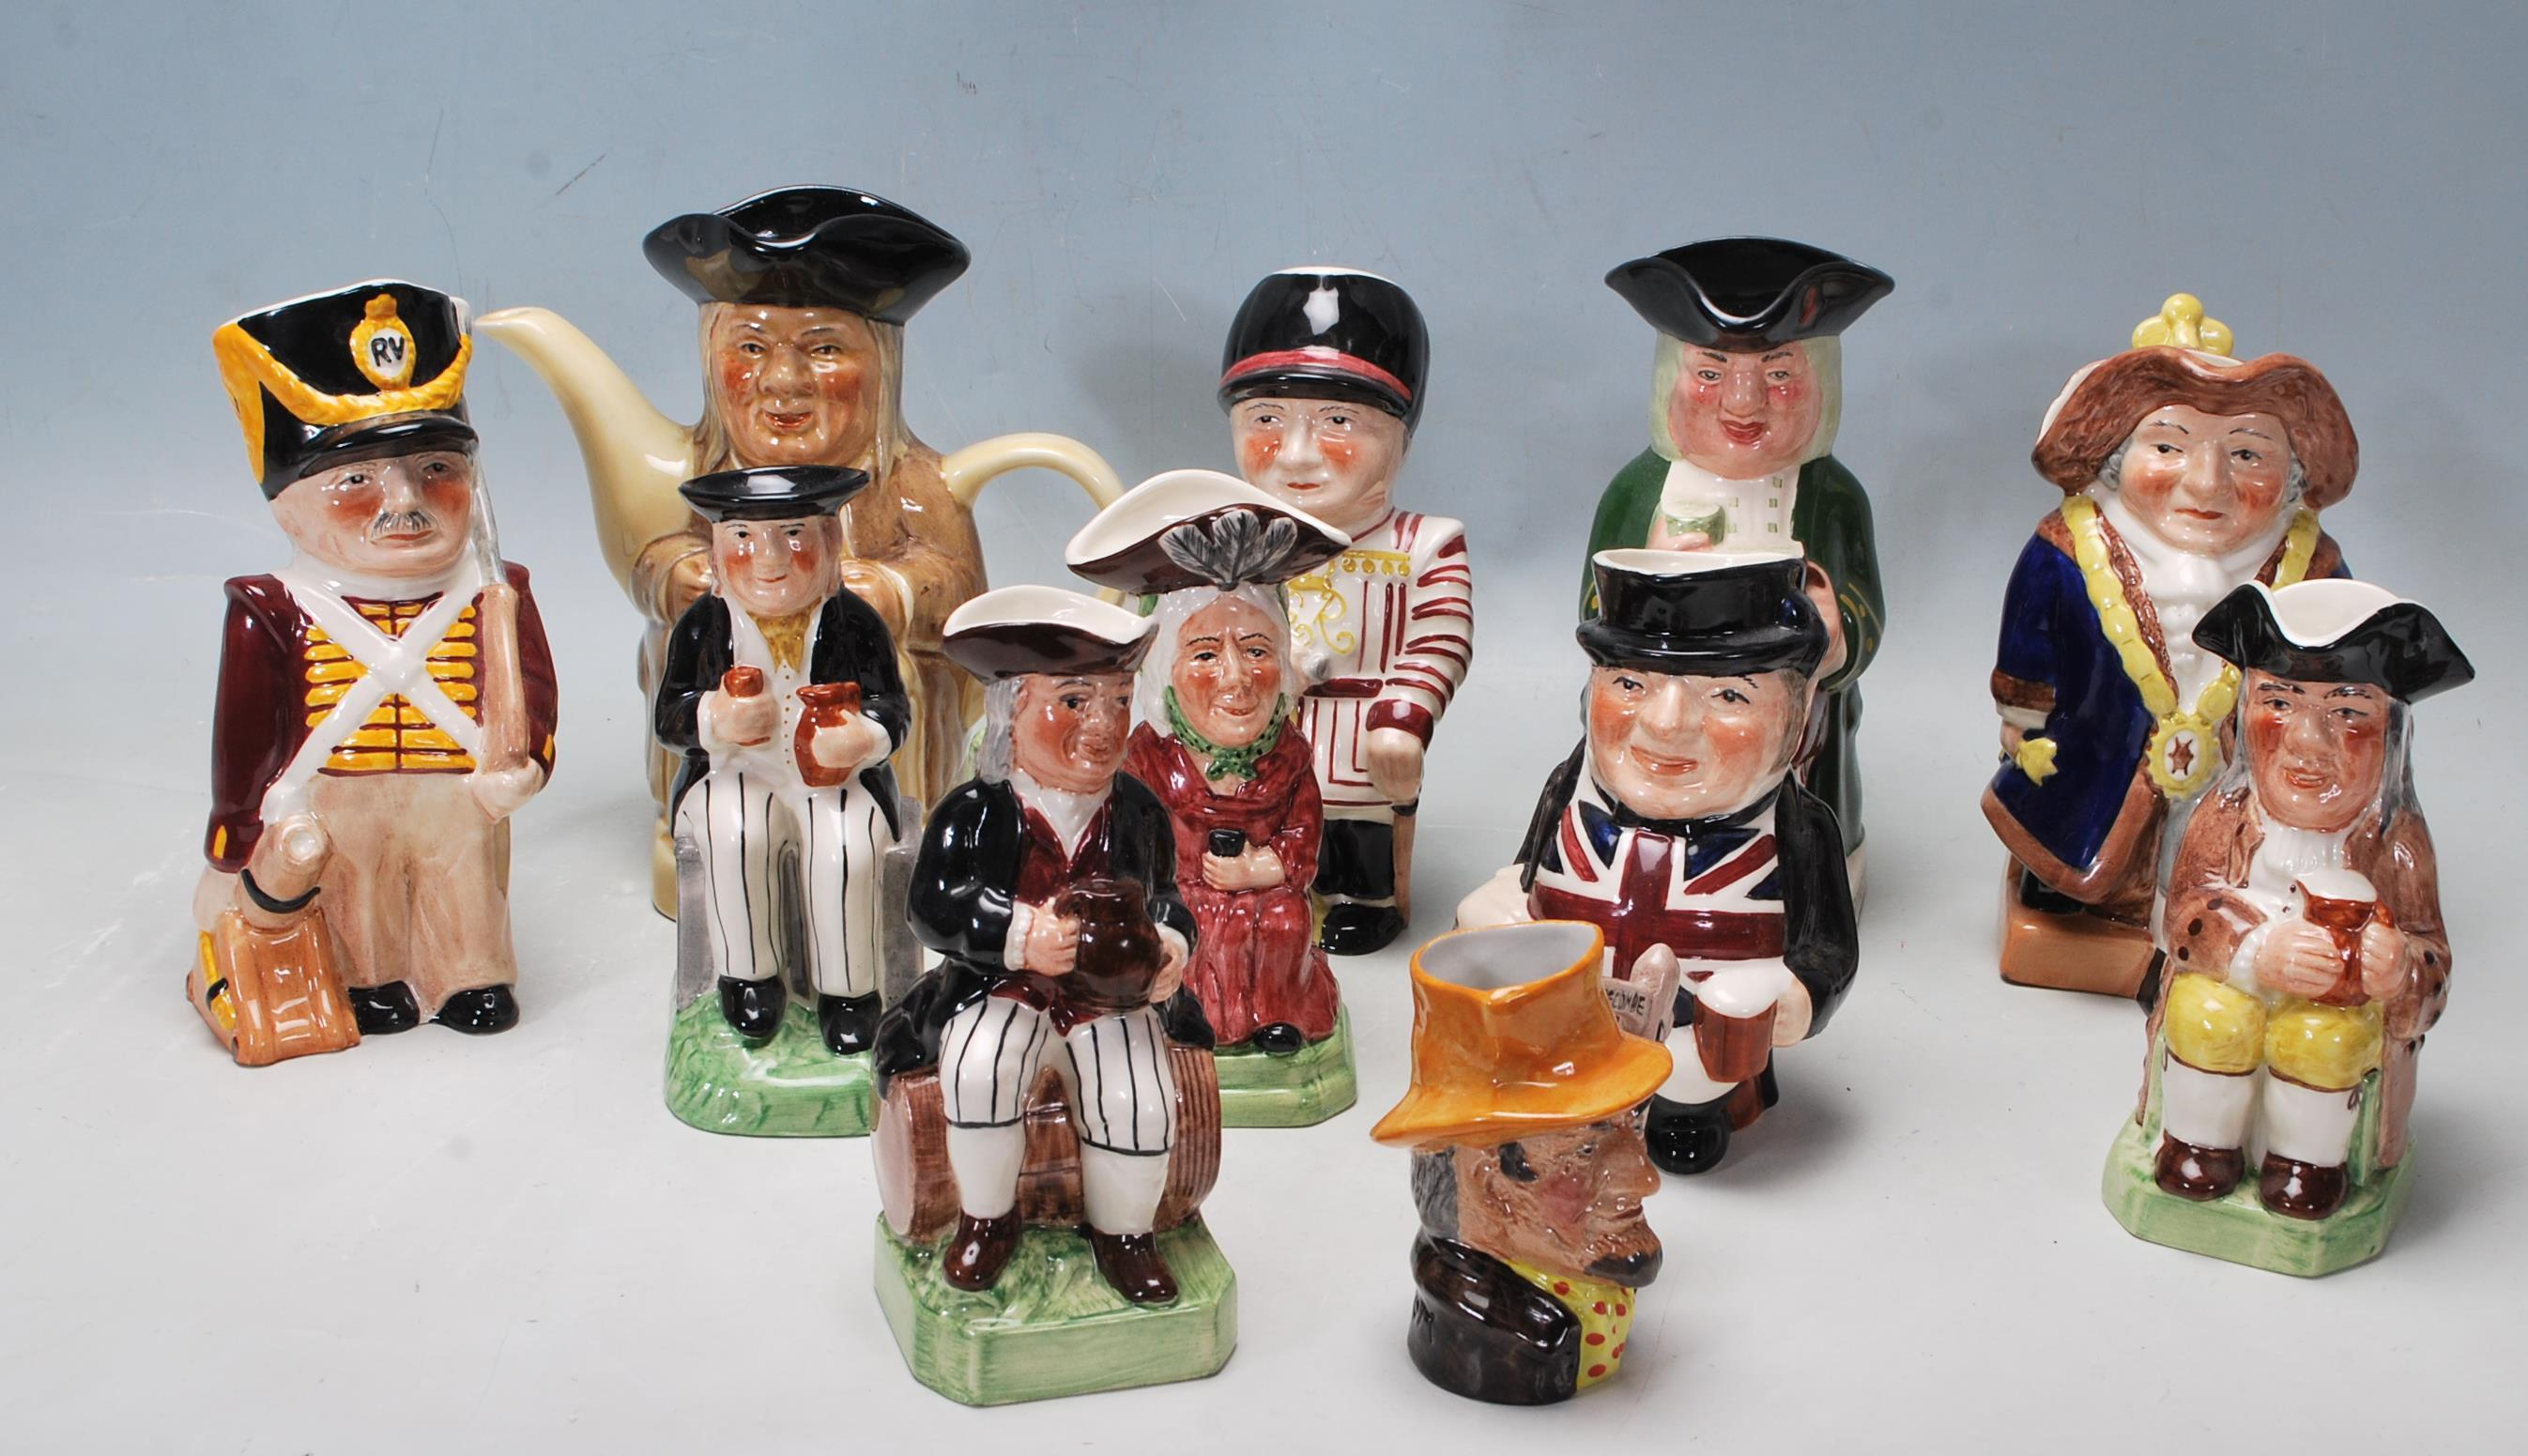 LARGE GROUP OF 20TH CENTURY CERAMIC TOBY JUGS